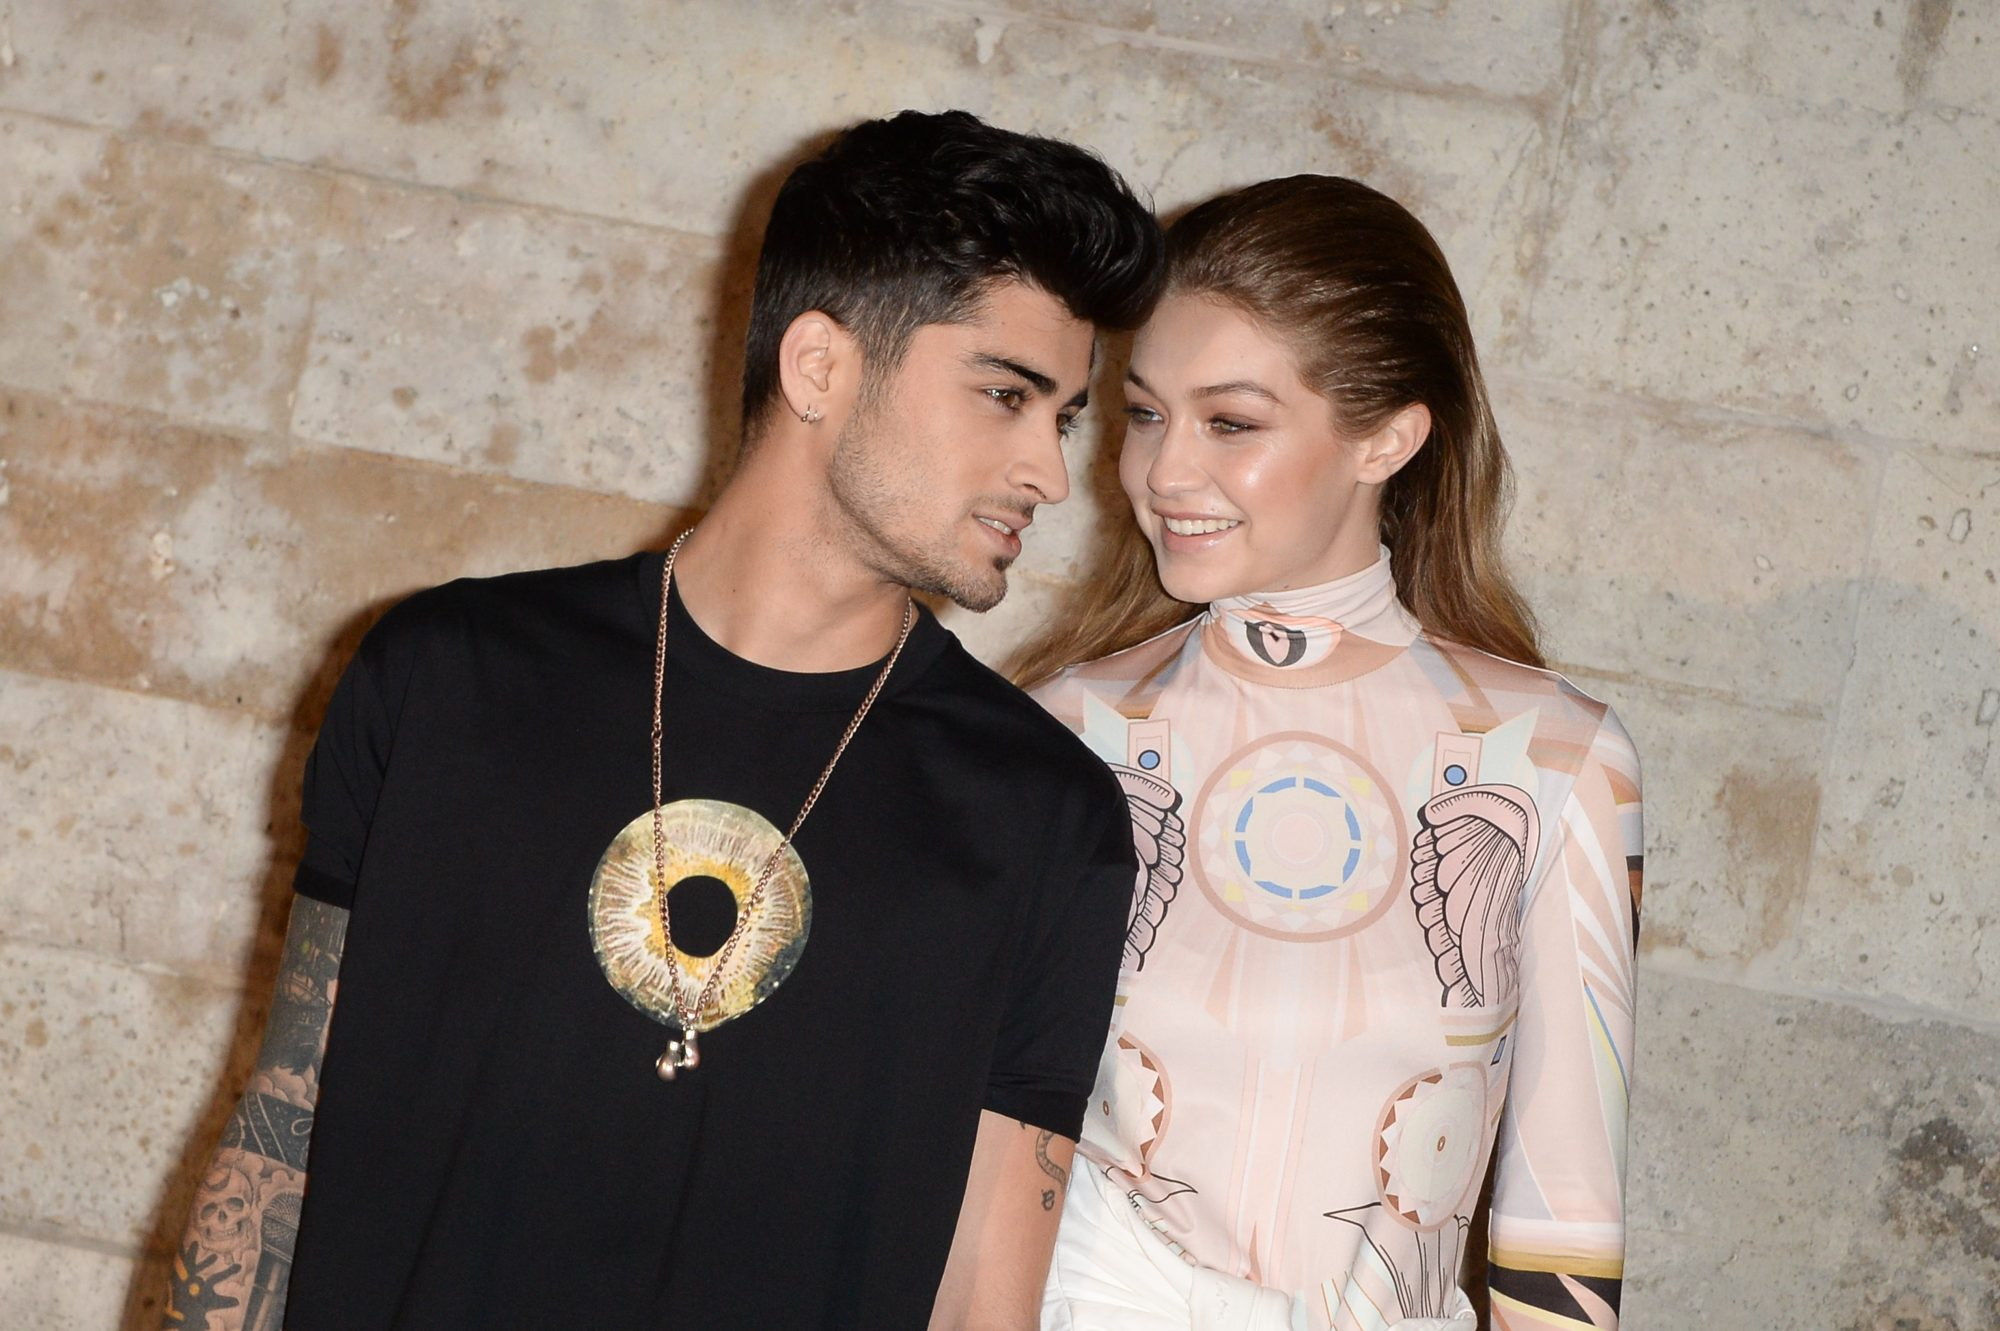 Zayn and Gigi Hadid